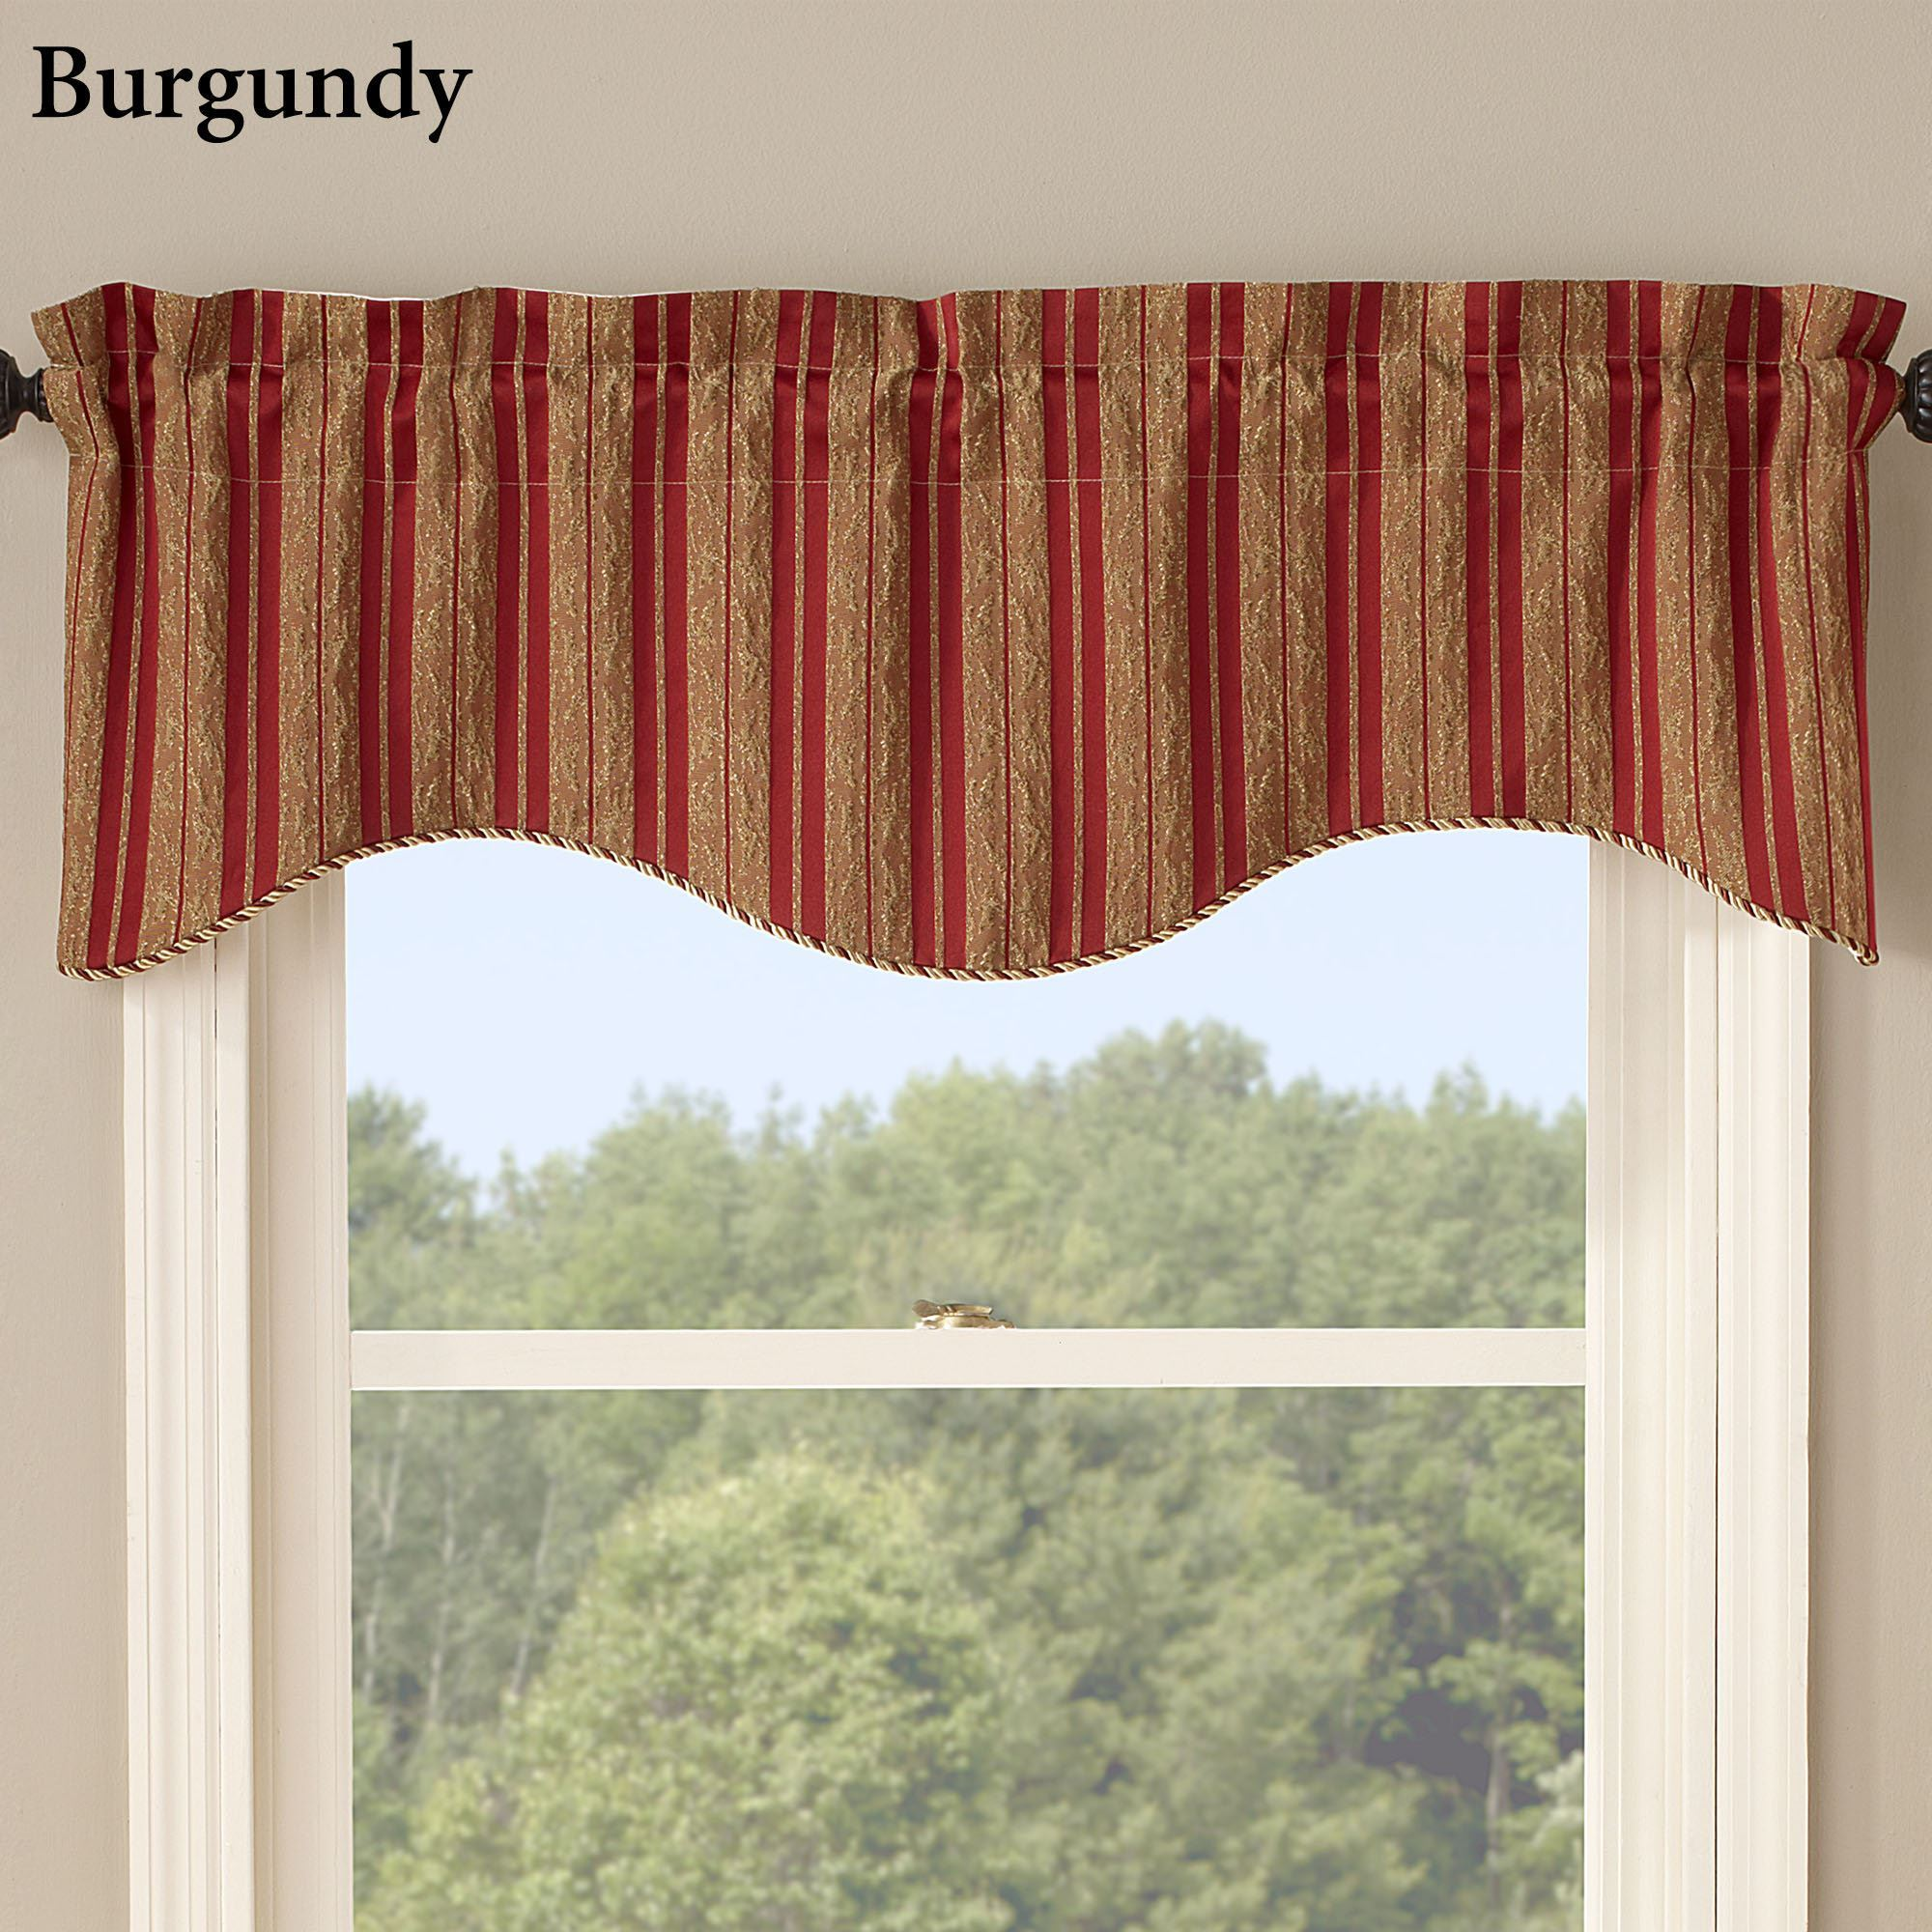 beige treatments swag lace inch love valances black window for living room youll curtains and valance burgundy pole swags